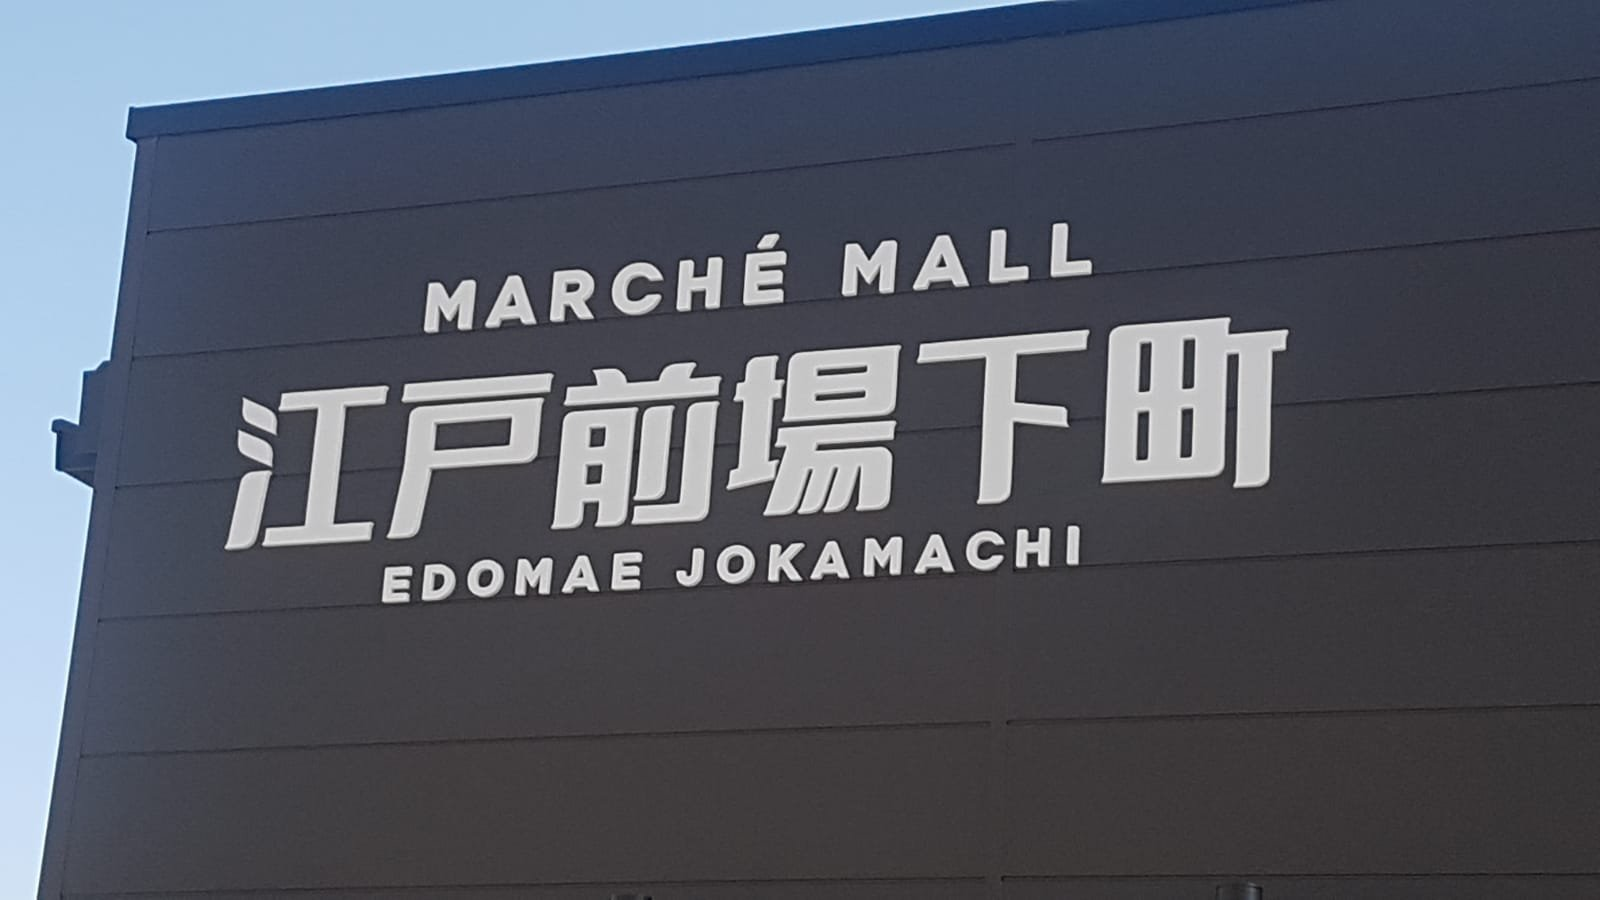 Marché Mall in Tokio